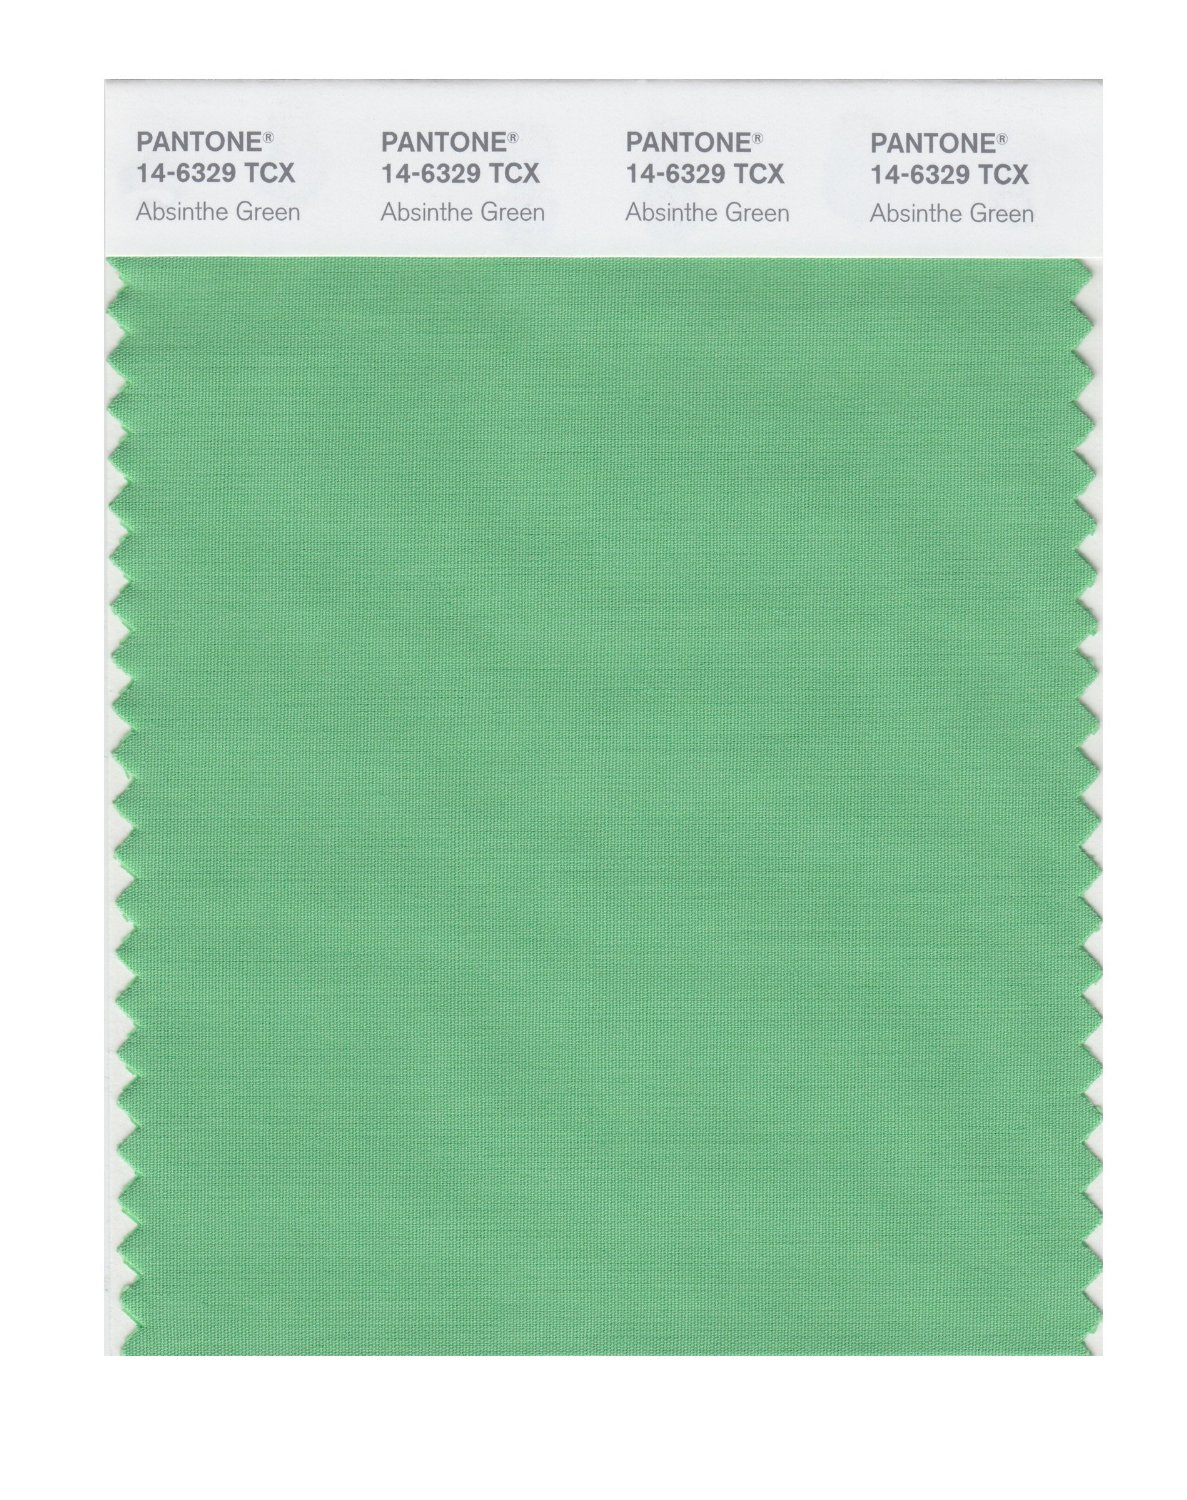 Pantone Smart Swatch 14-6329 Absinthe Green